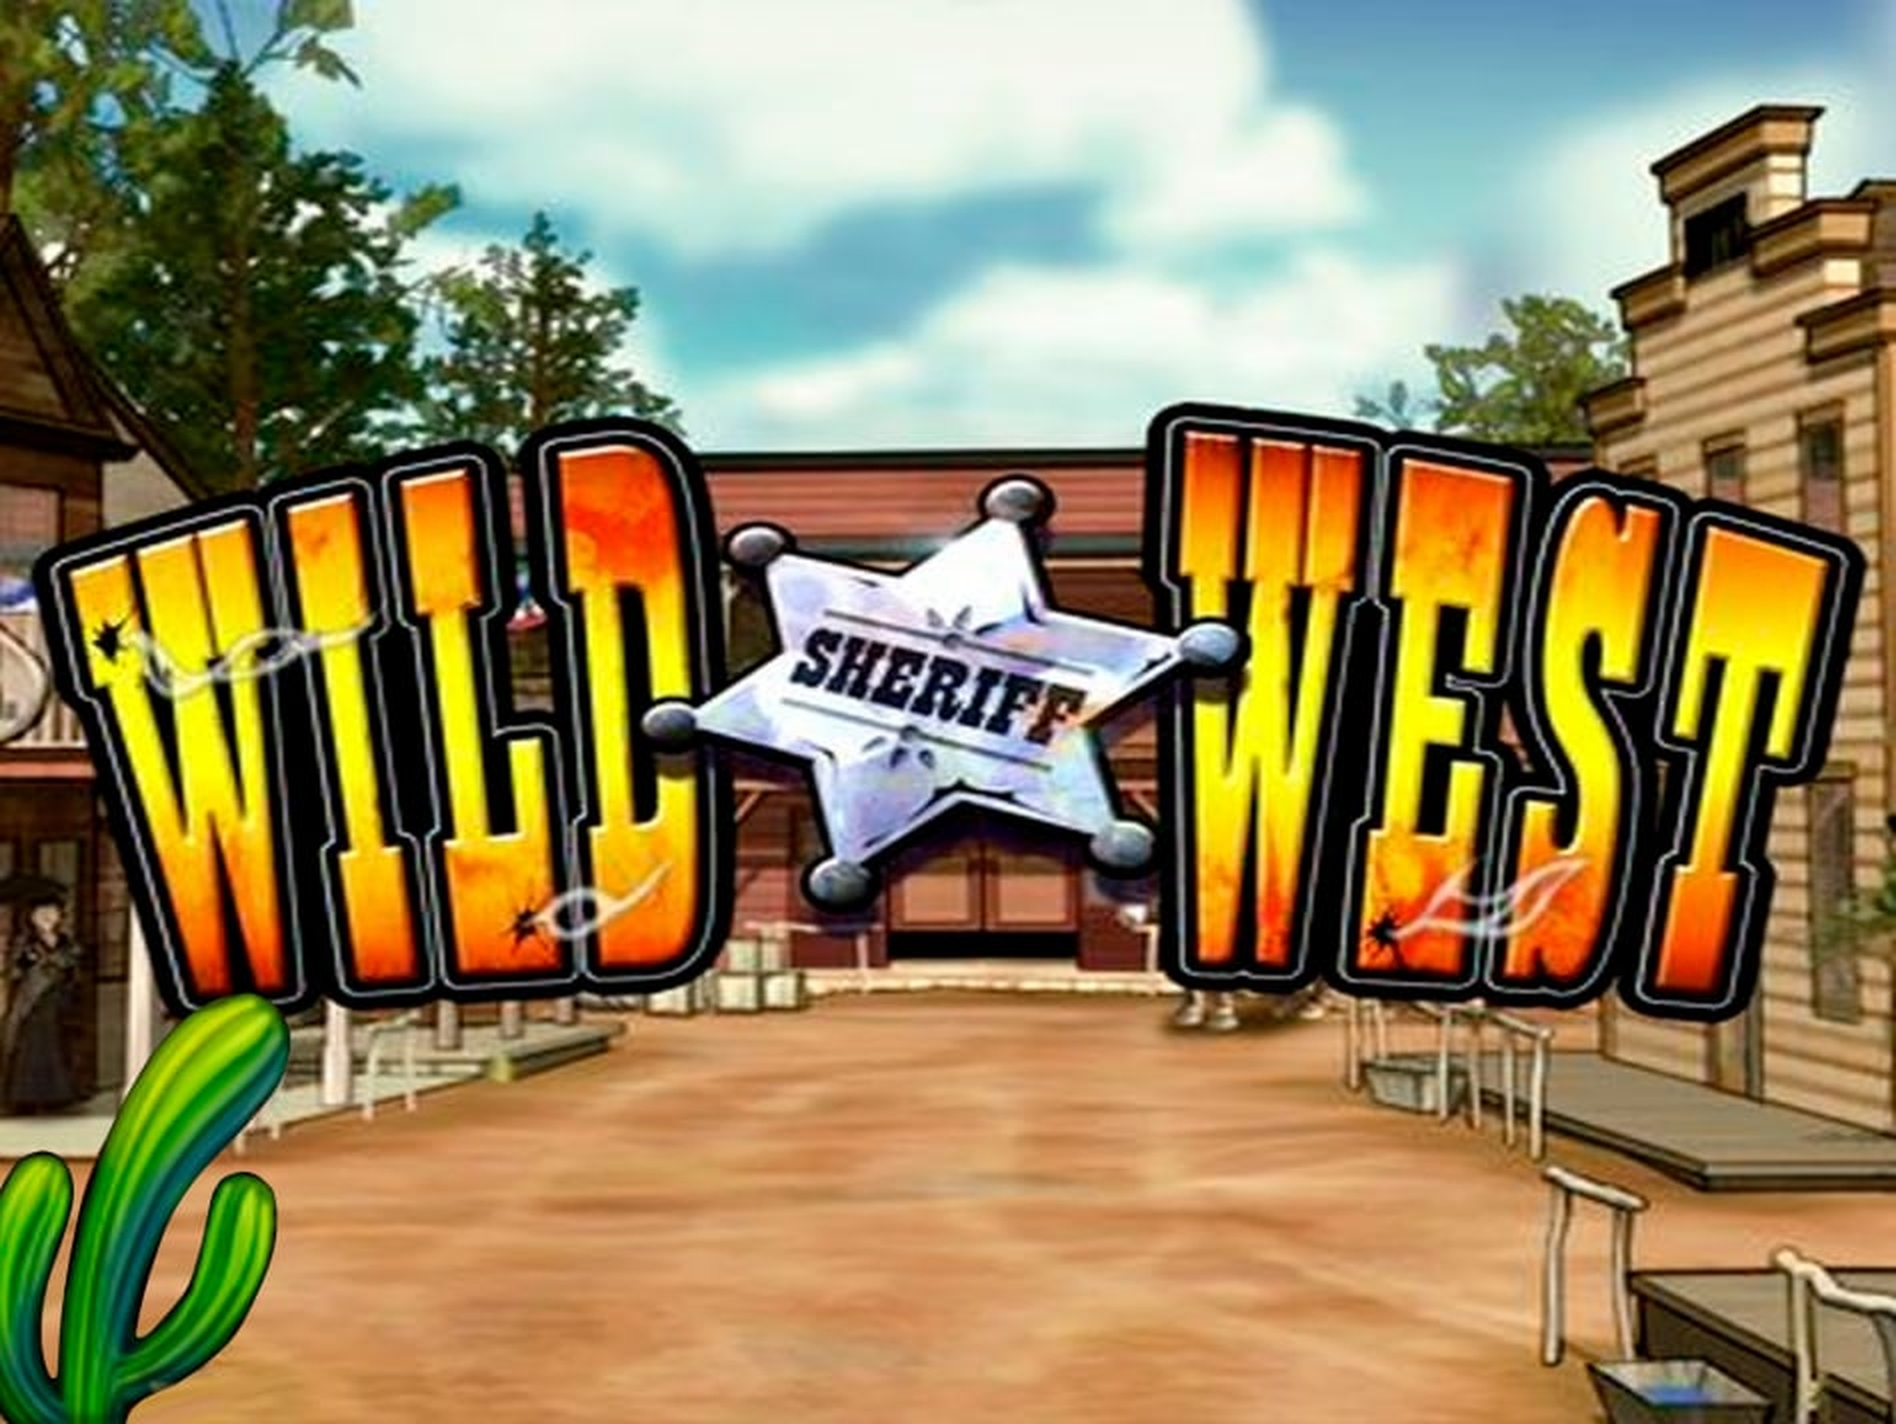 Wild West (R. Franco) Online Slot Demo Game by RFranco Group